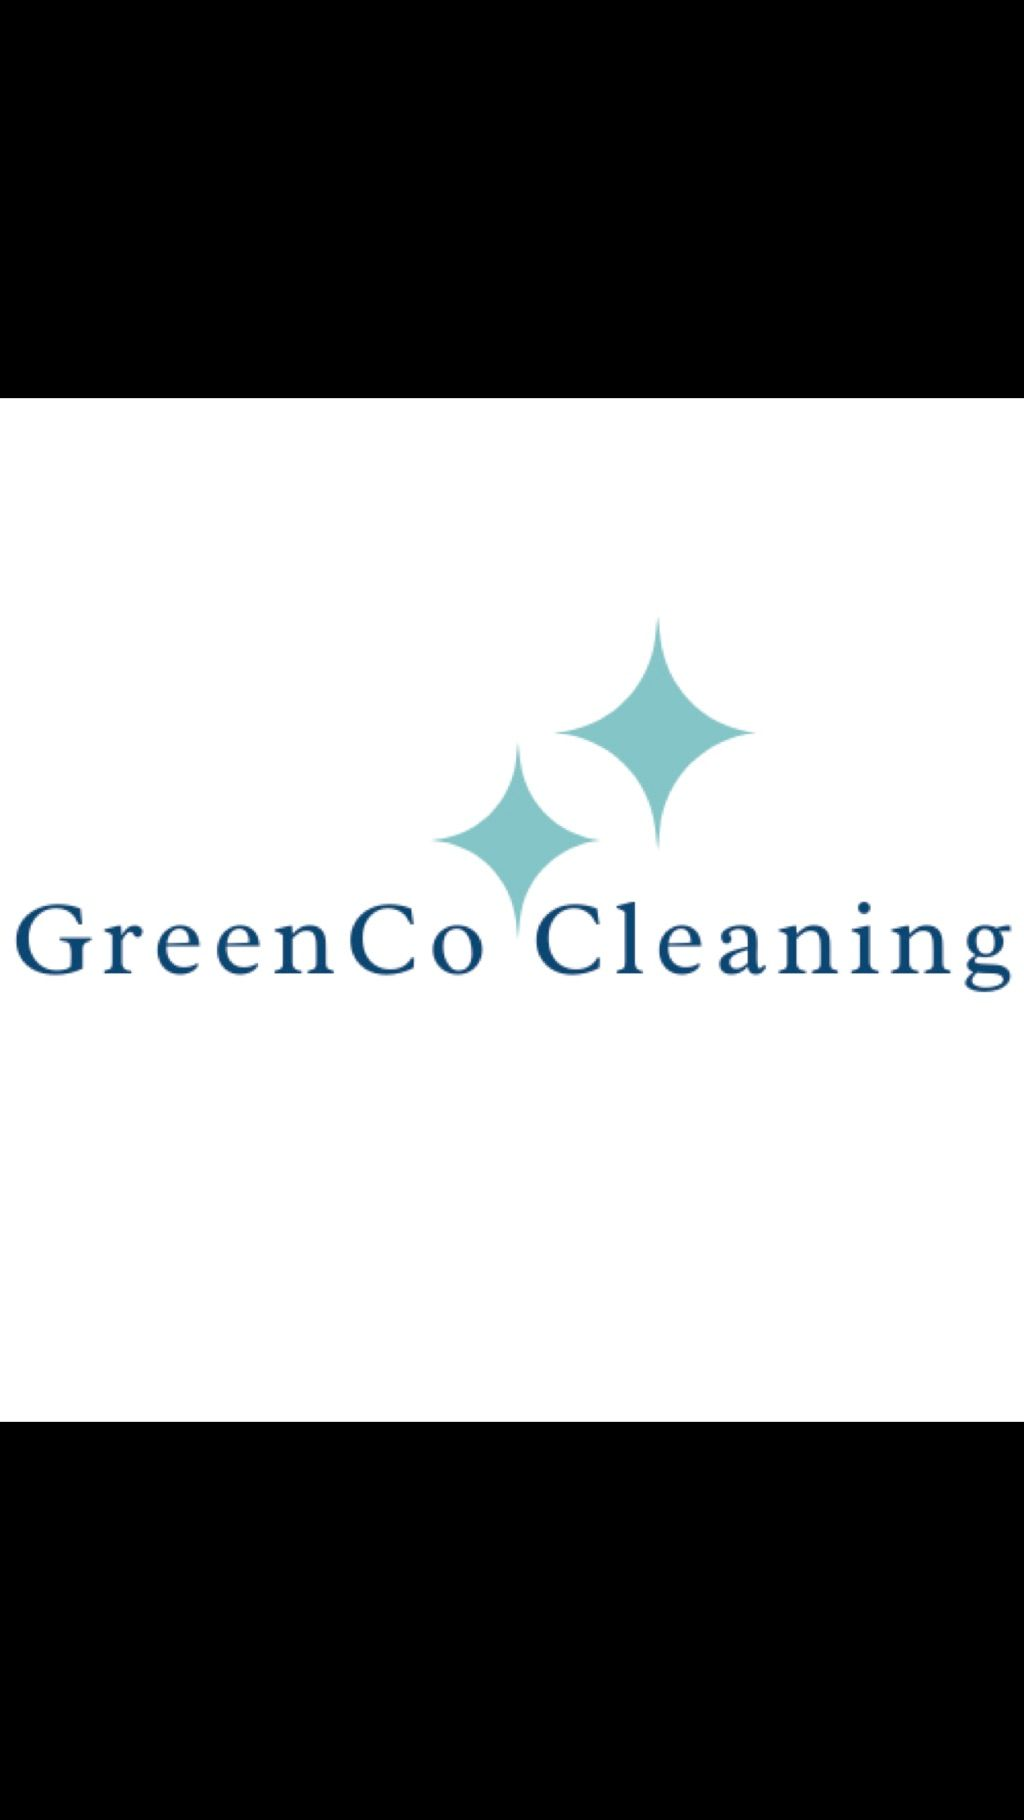 GreenCo Cleaning